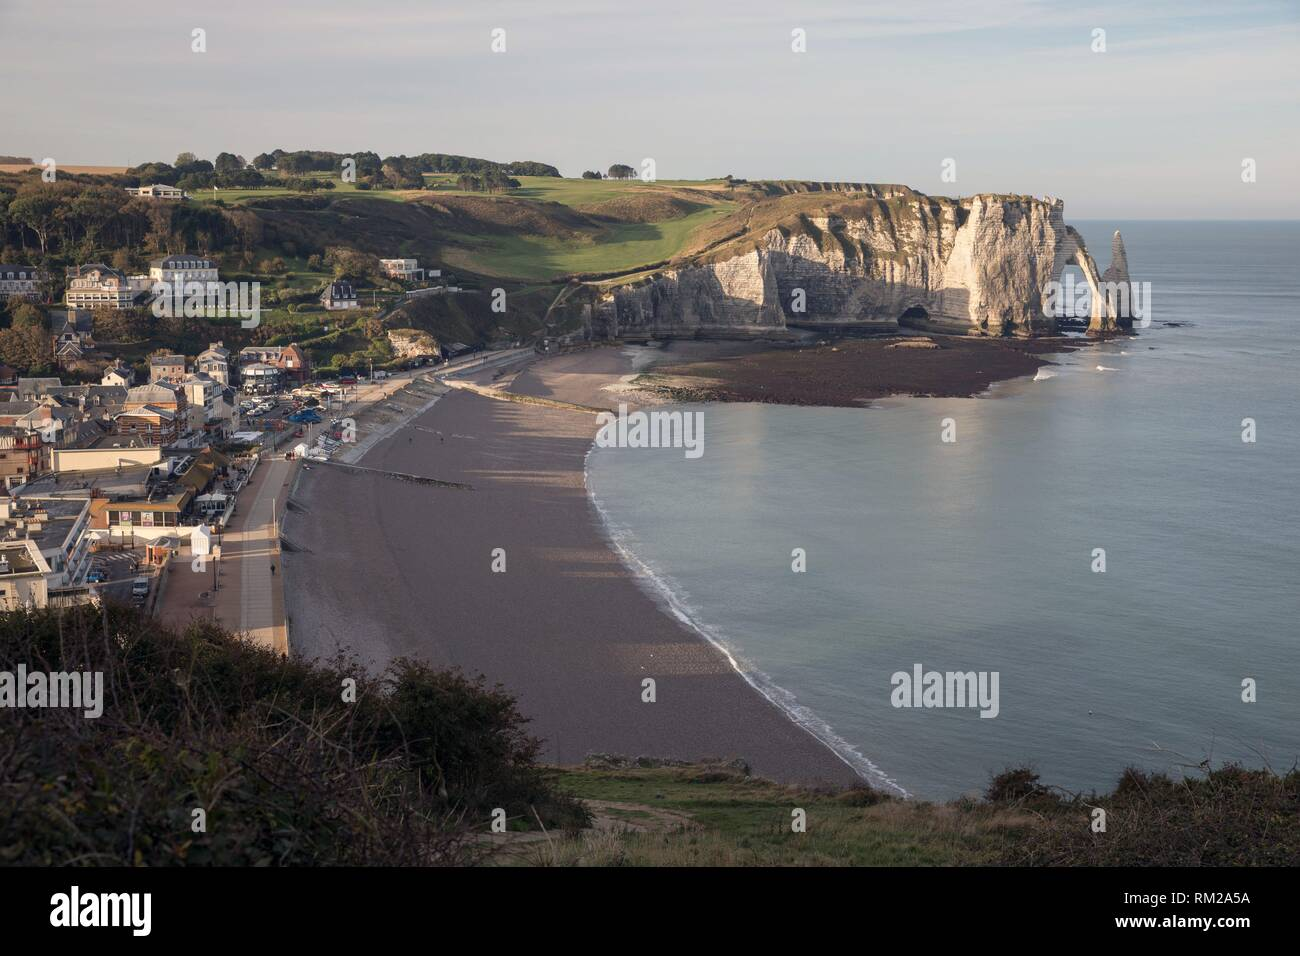 Etretat with Porte d´Aval (Agal gate), Aiguille (needle) and cliffs in background. Normandy, France - Stock Image